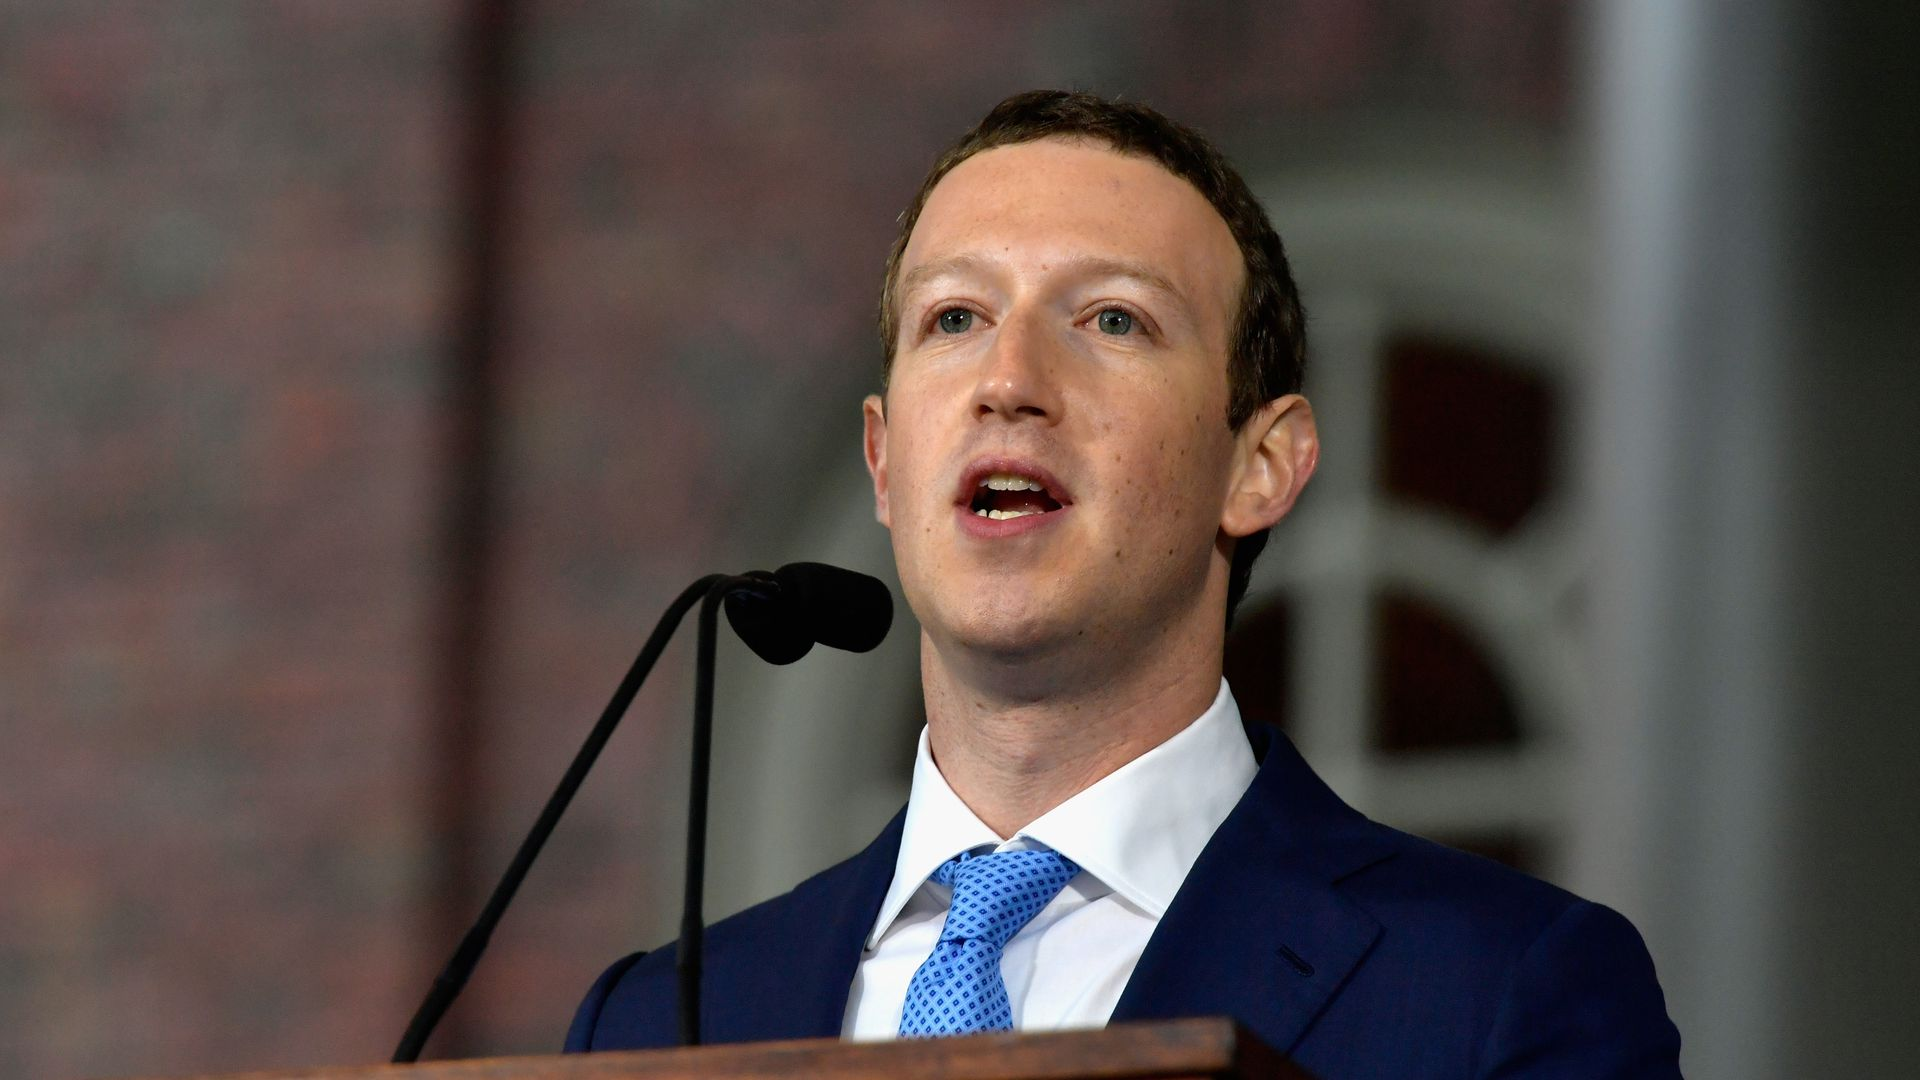 Facebook CEO Mark Zuckerberg speaks from behind a podium